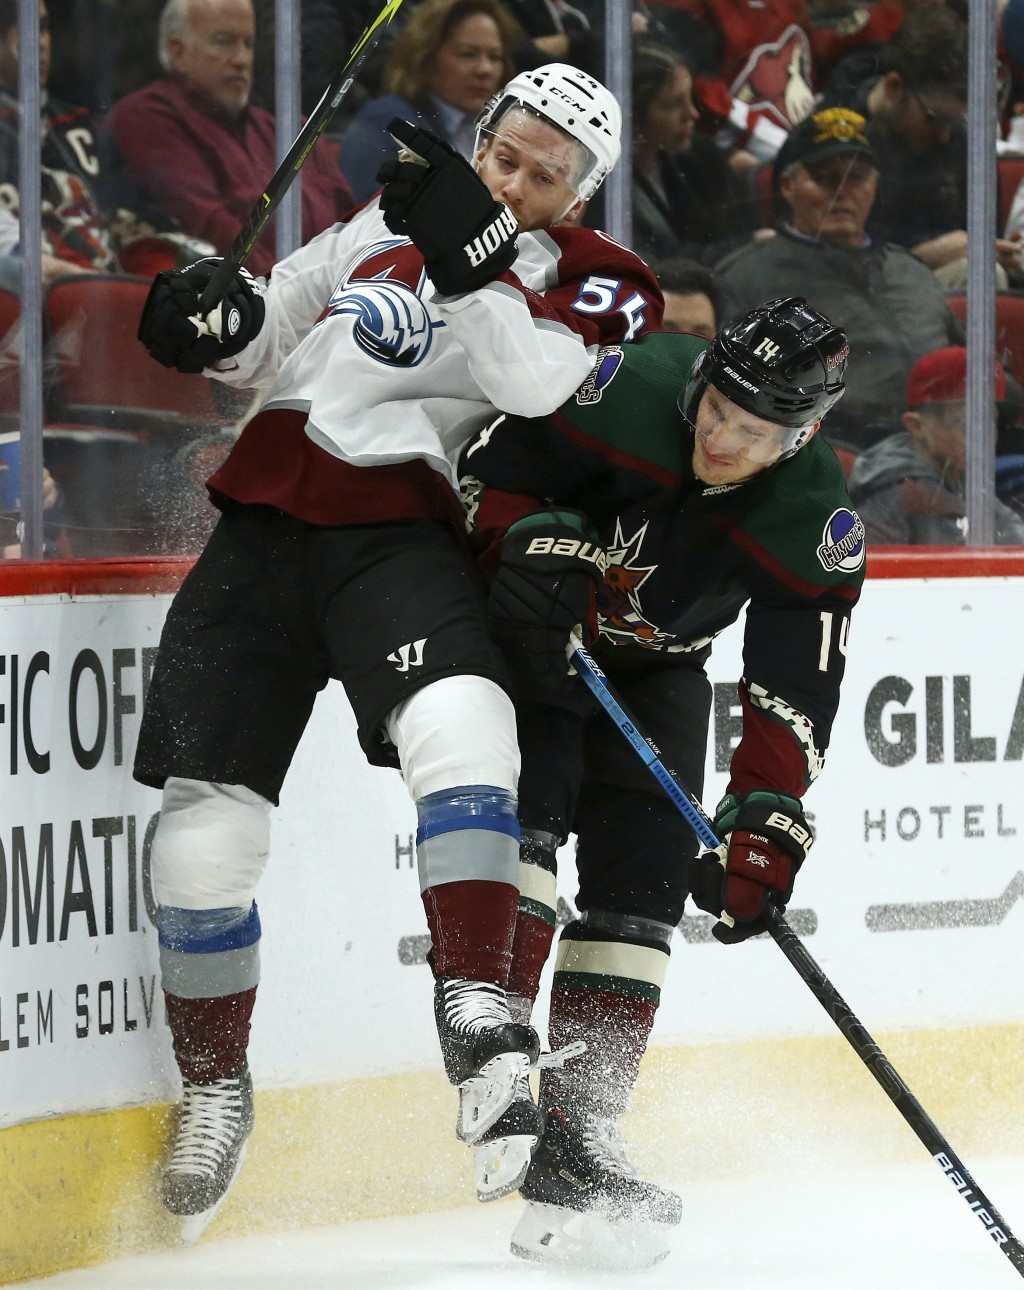 Arizona Coyotes right wing Richard Panik (14) checks Colorado Avalanche defenseman Anton Lindholm (54) into the boards during the second period of an